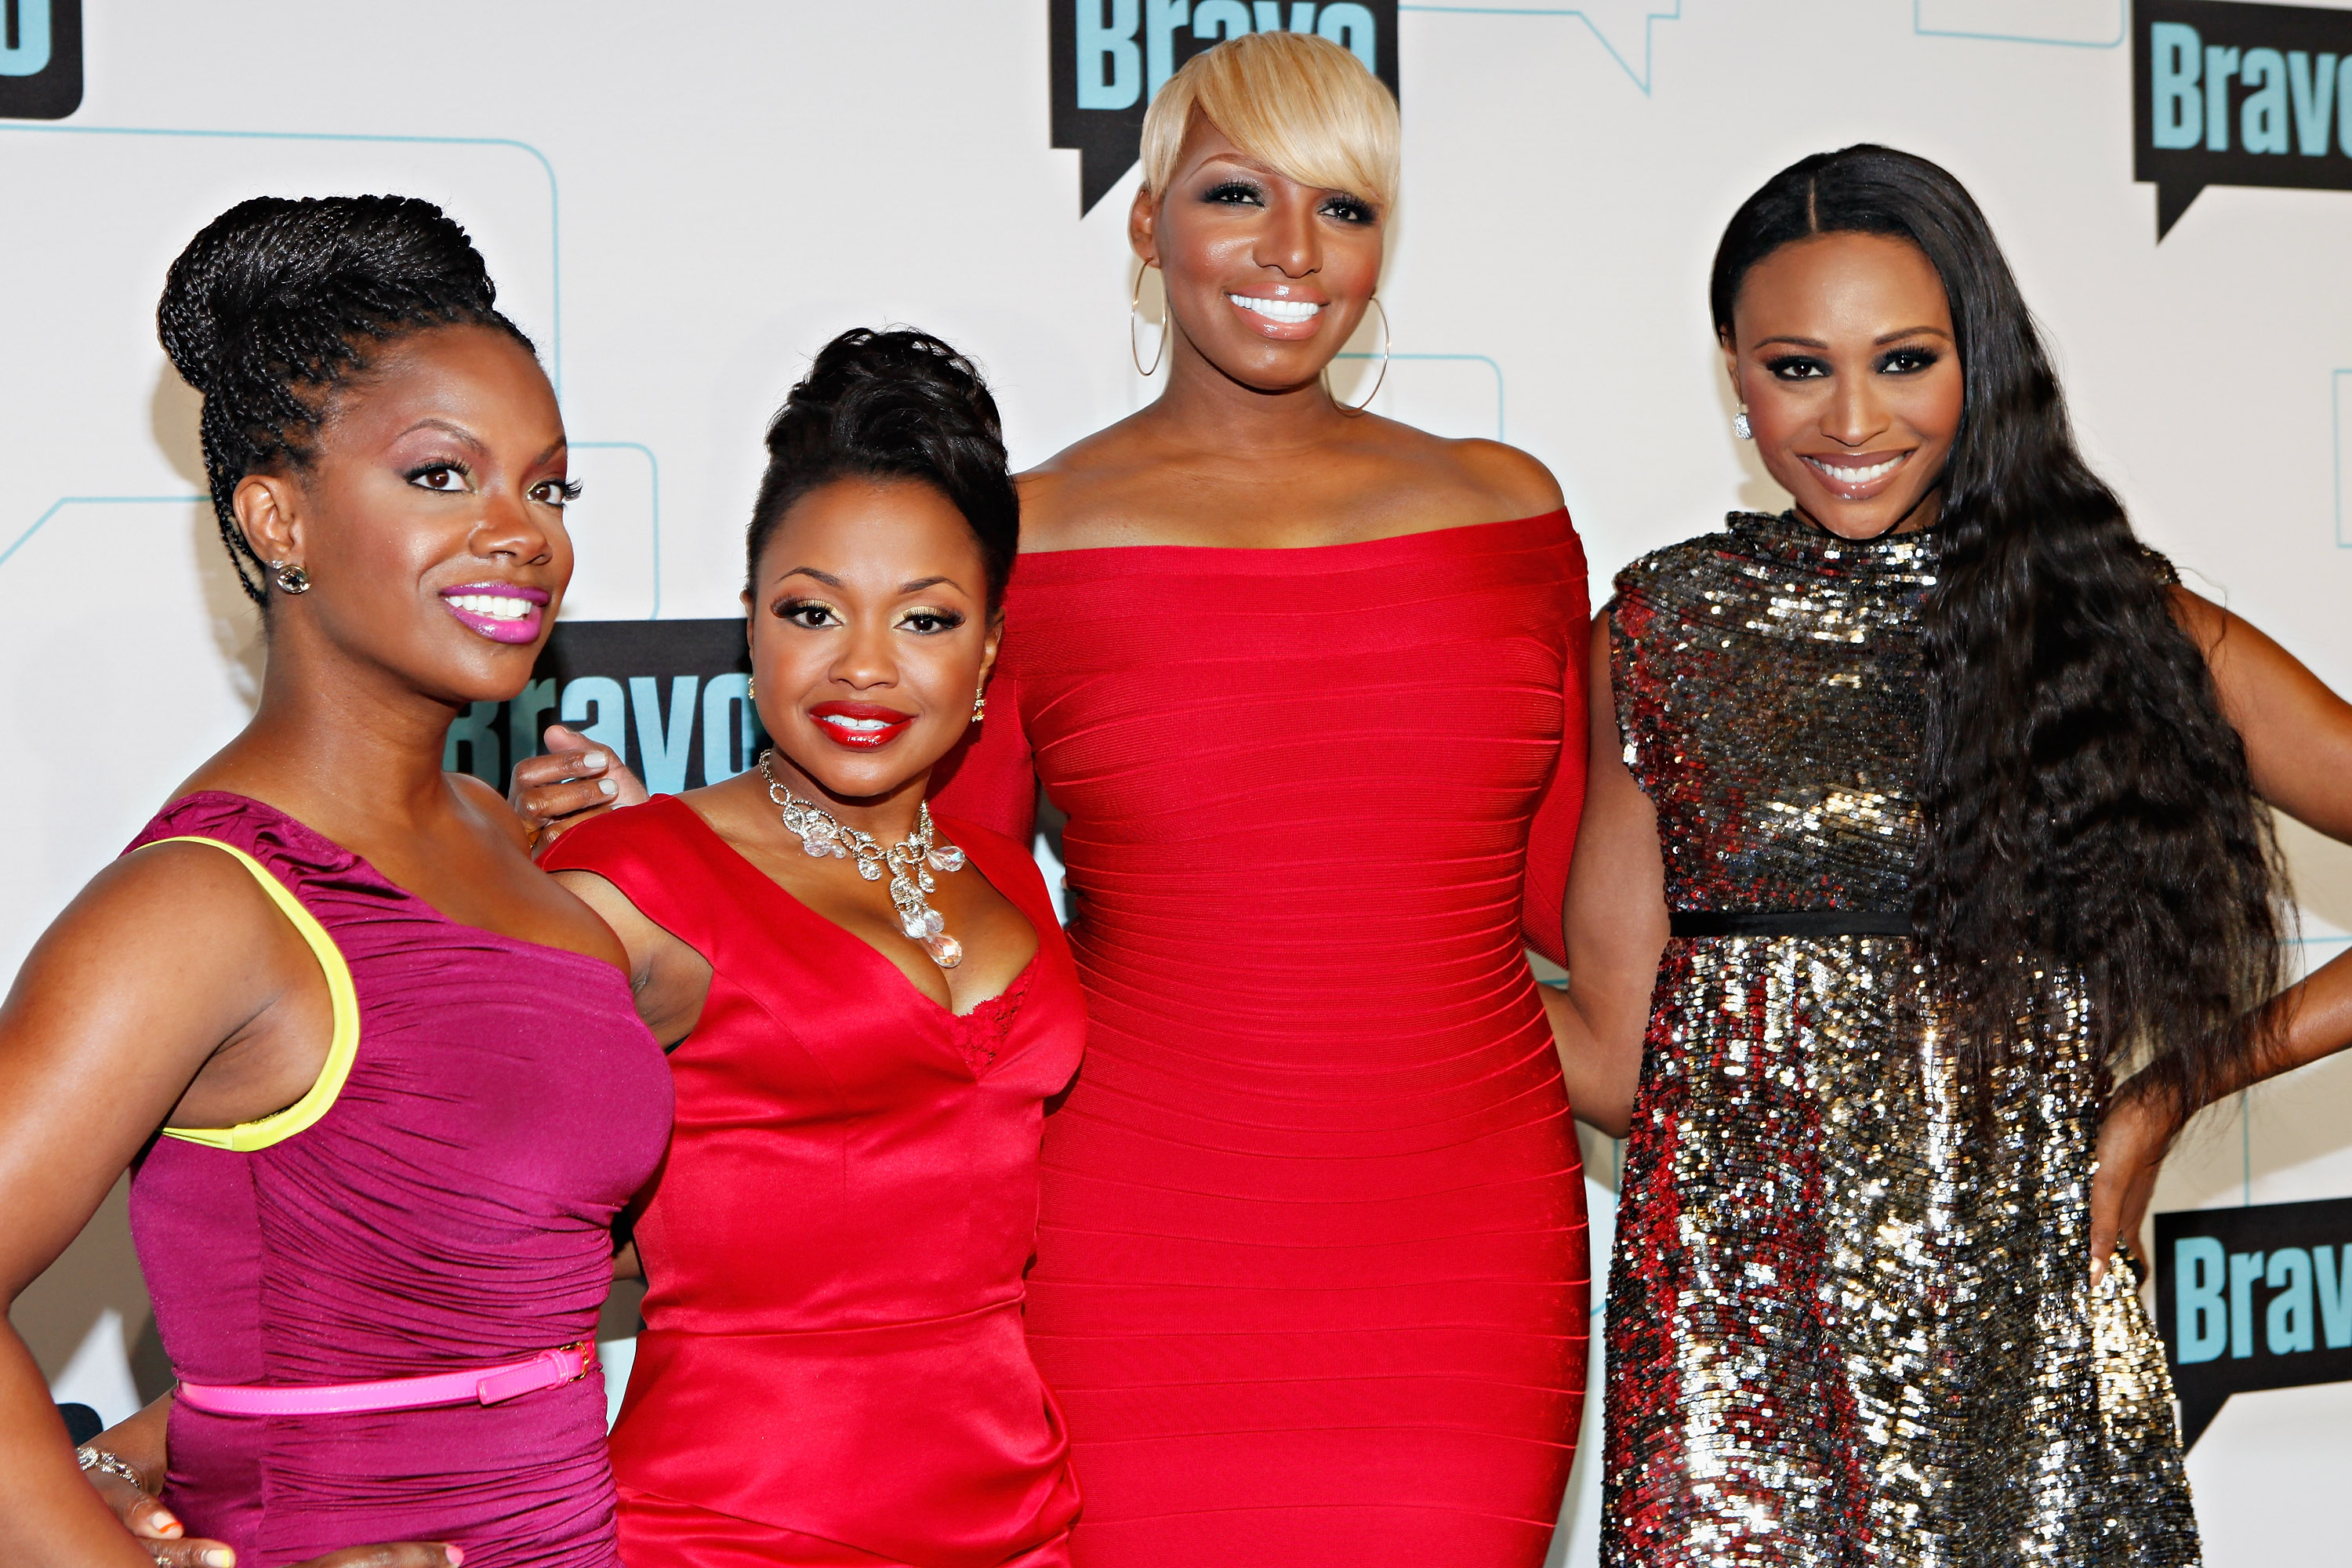 The Richest Real Housewives Of Atlanta Star Is Definitely Not The Loudest About Her Wealth